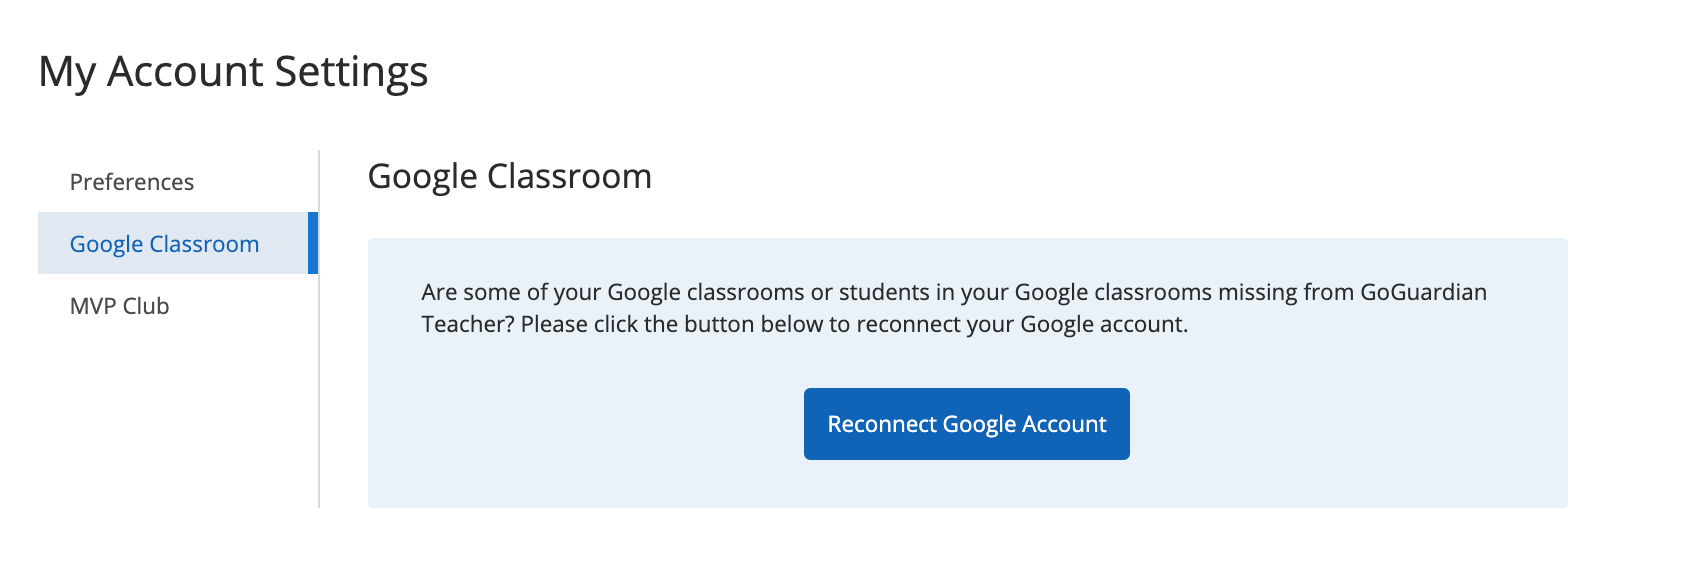 Reconnect_Google_Account.png